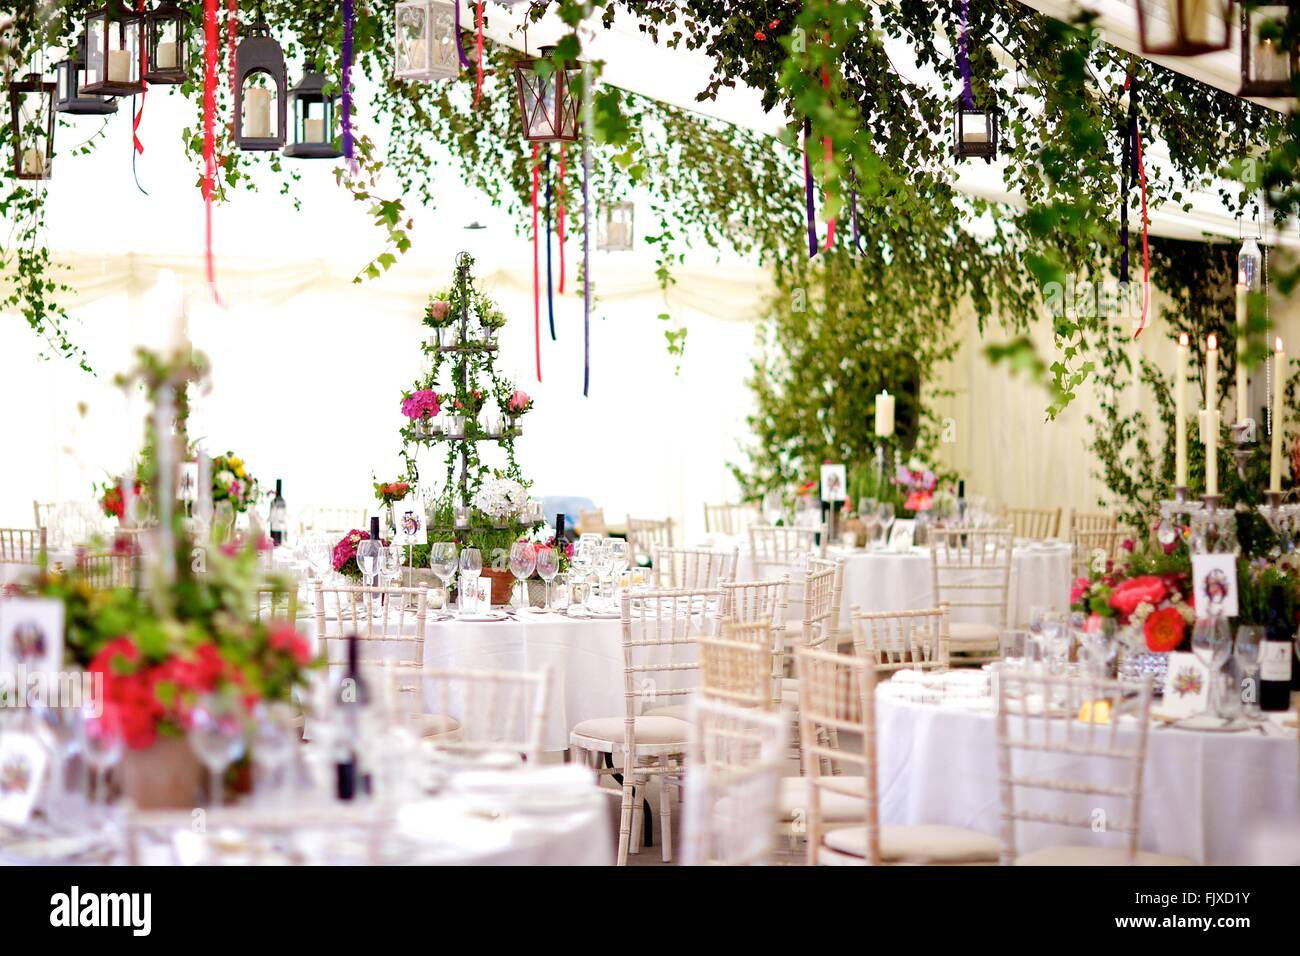 Wedding Table Decoration Roses Daisies Stock Photos Wedding Table